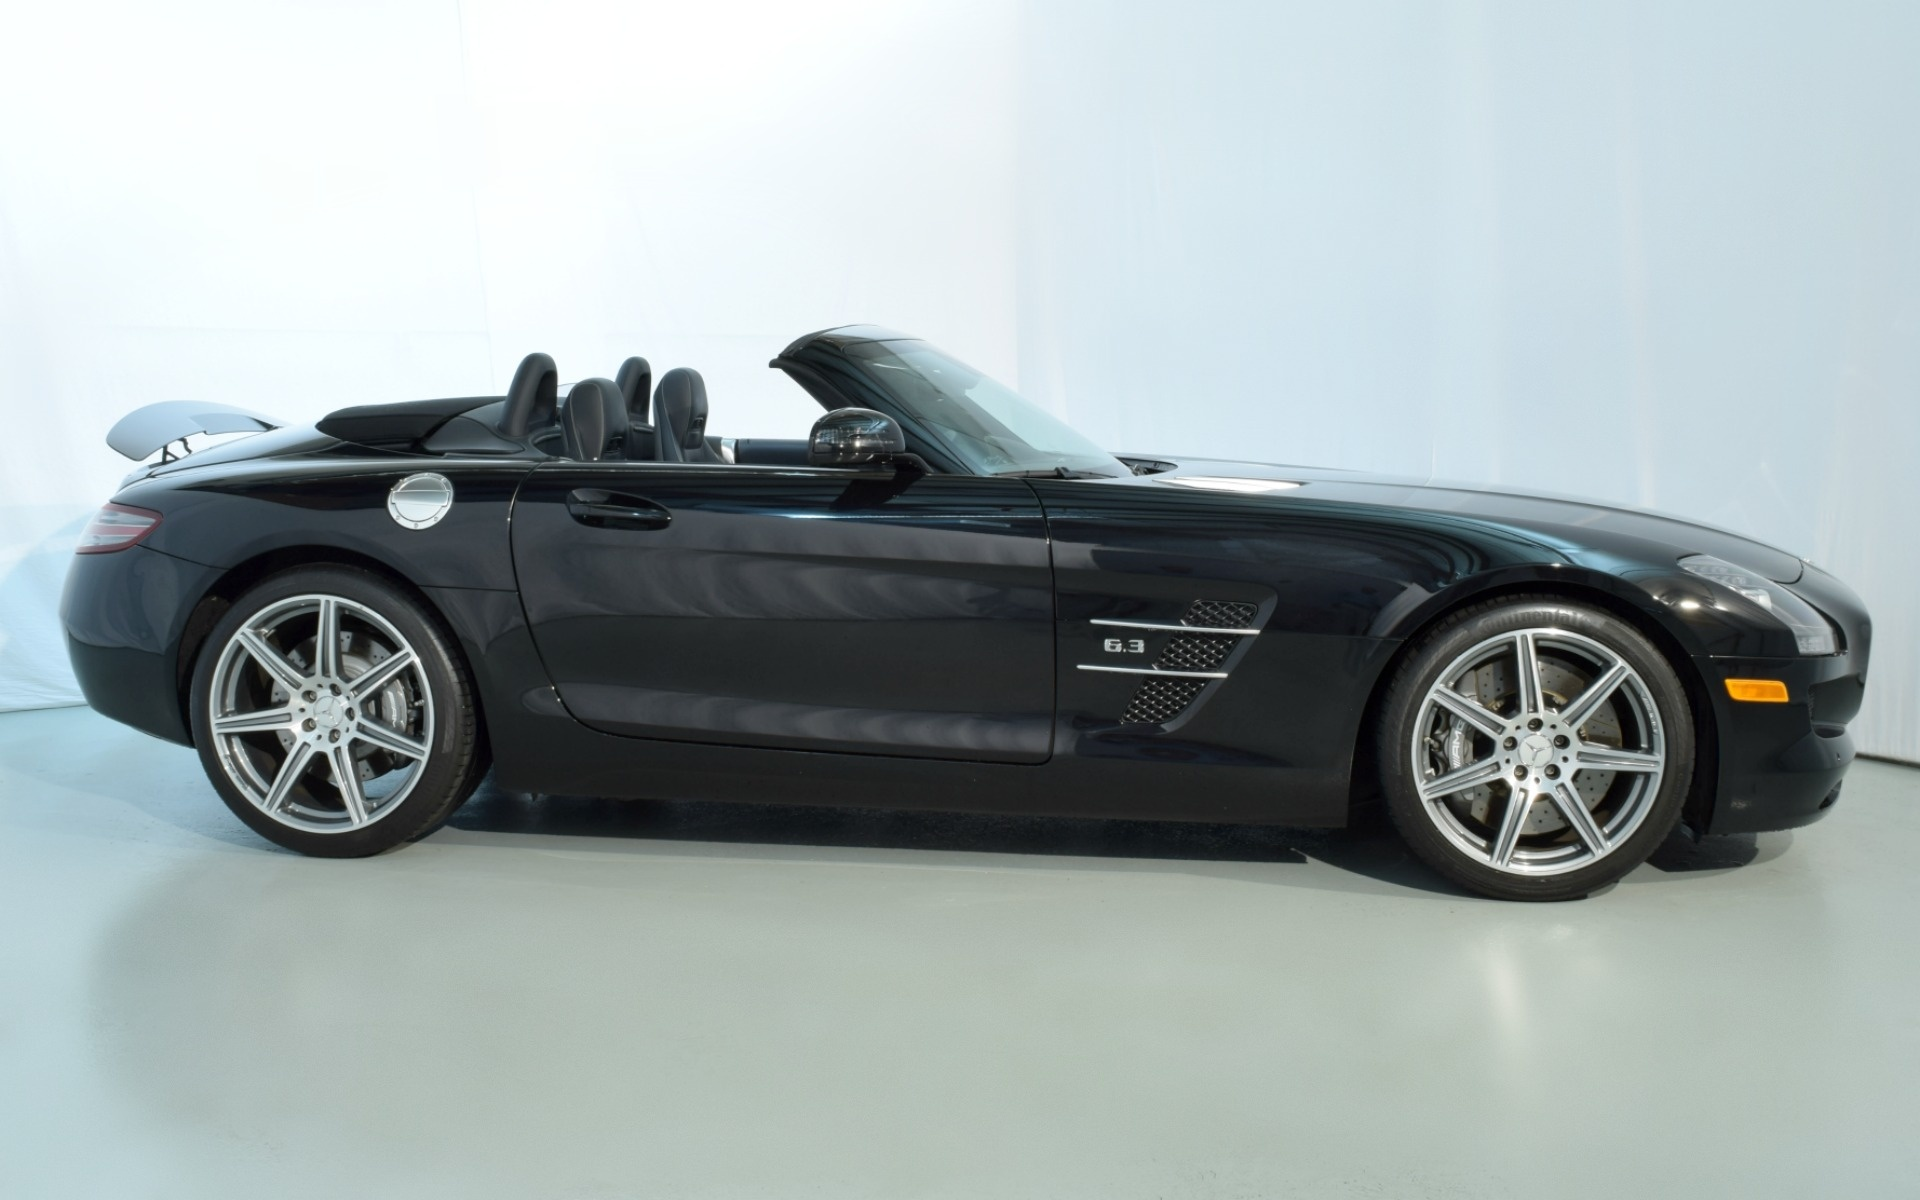 2012 mercedes benz sls amg sls amg for sale in norwell ma for 2012 mercedes benz sls amg